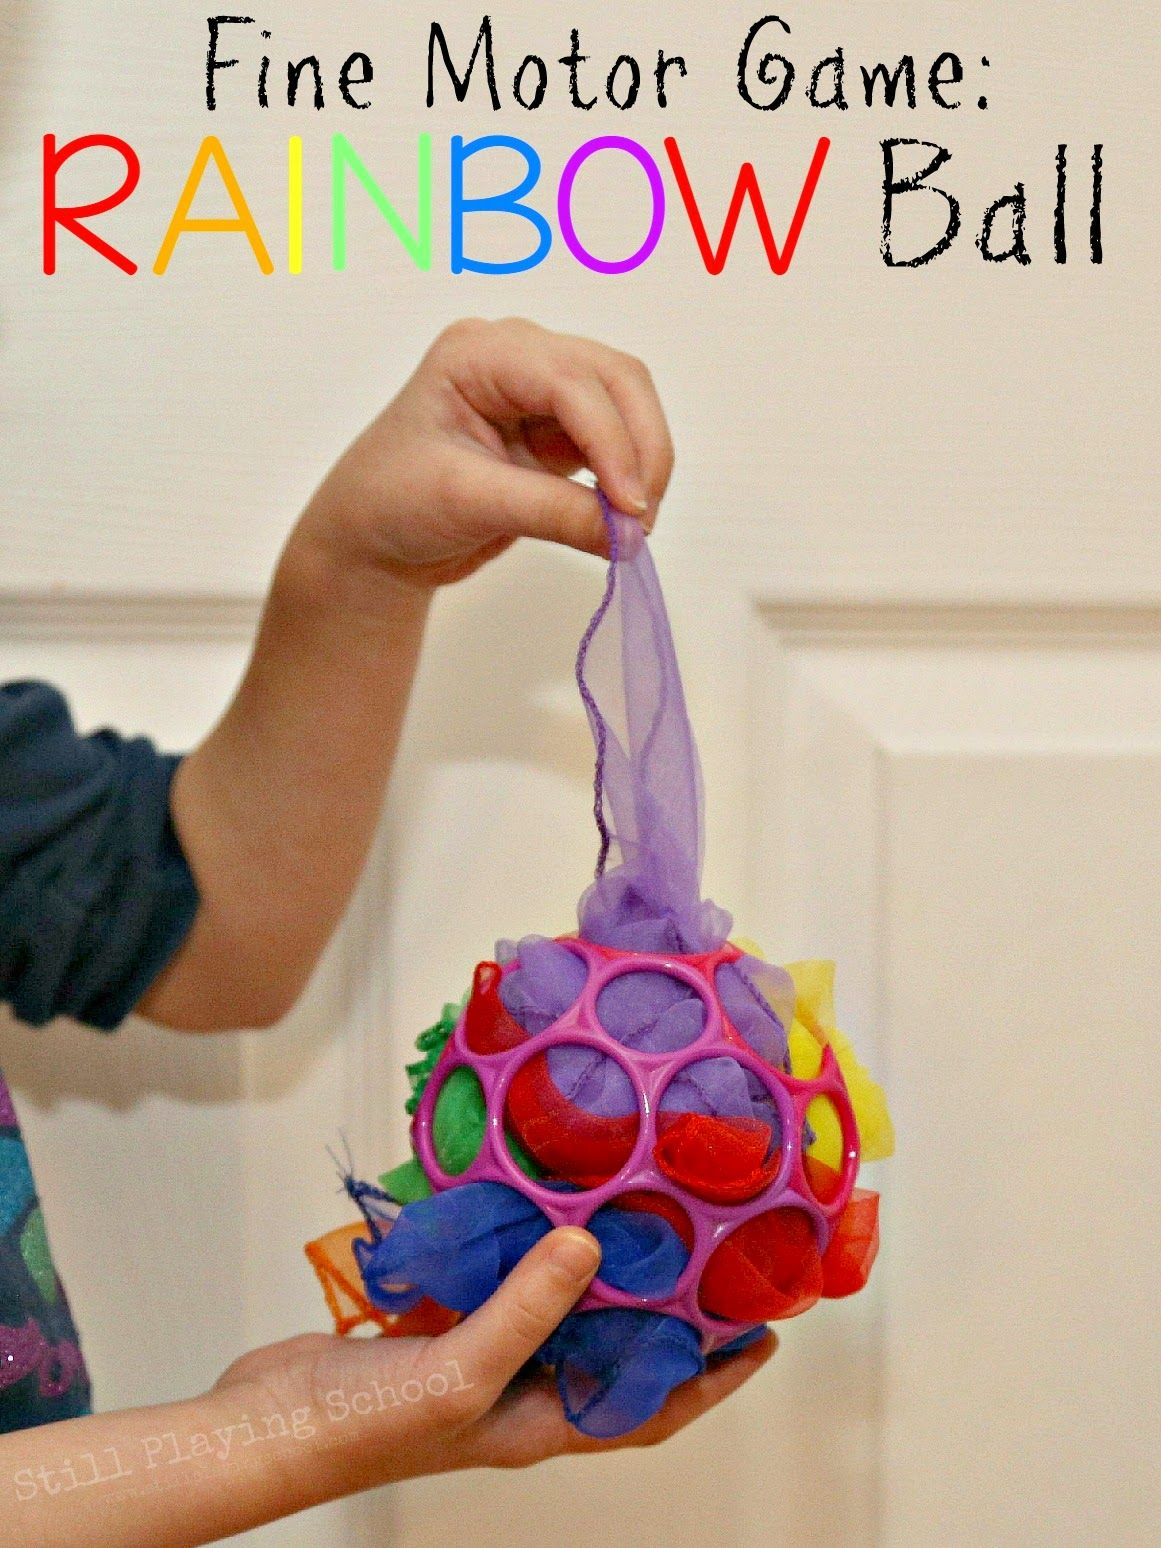 Spiele Motorik Fördern Fine Motor Rainbow Ball Game Kinder Pinterest